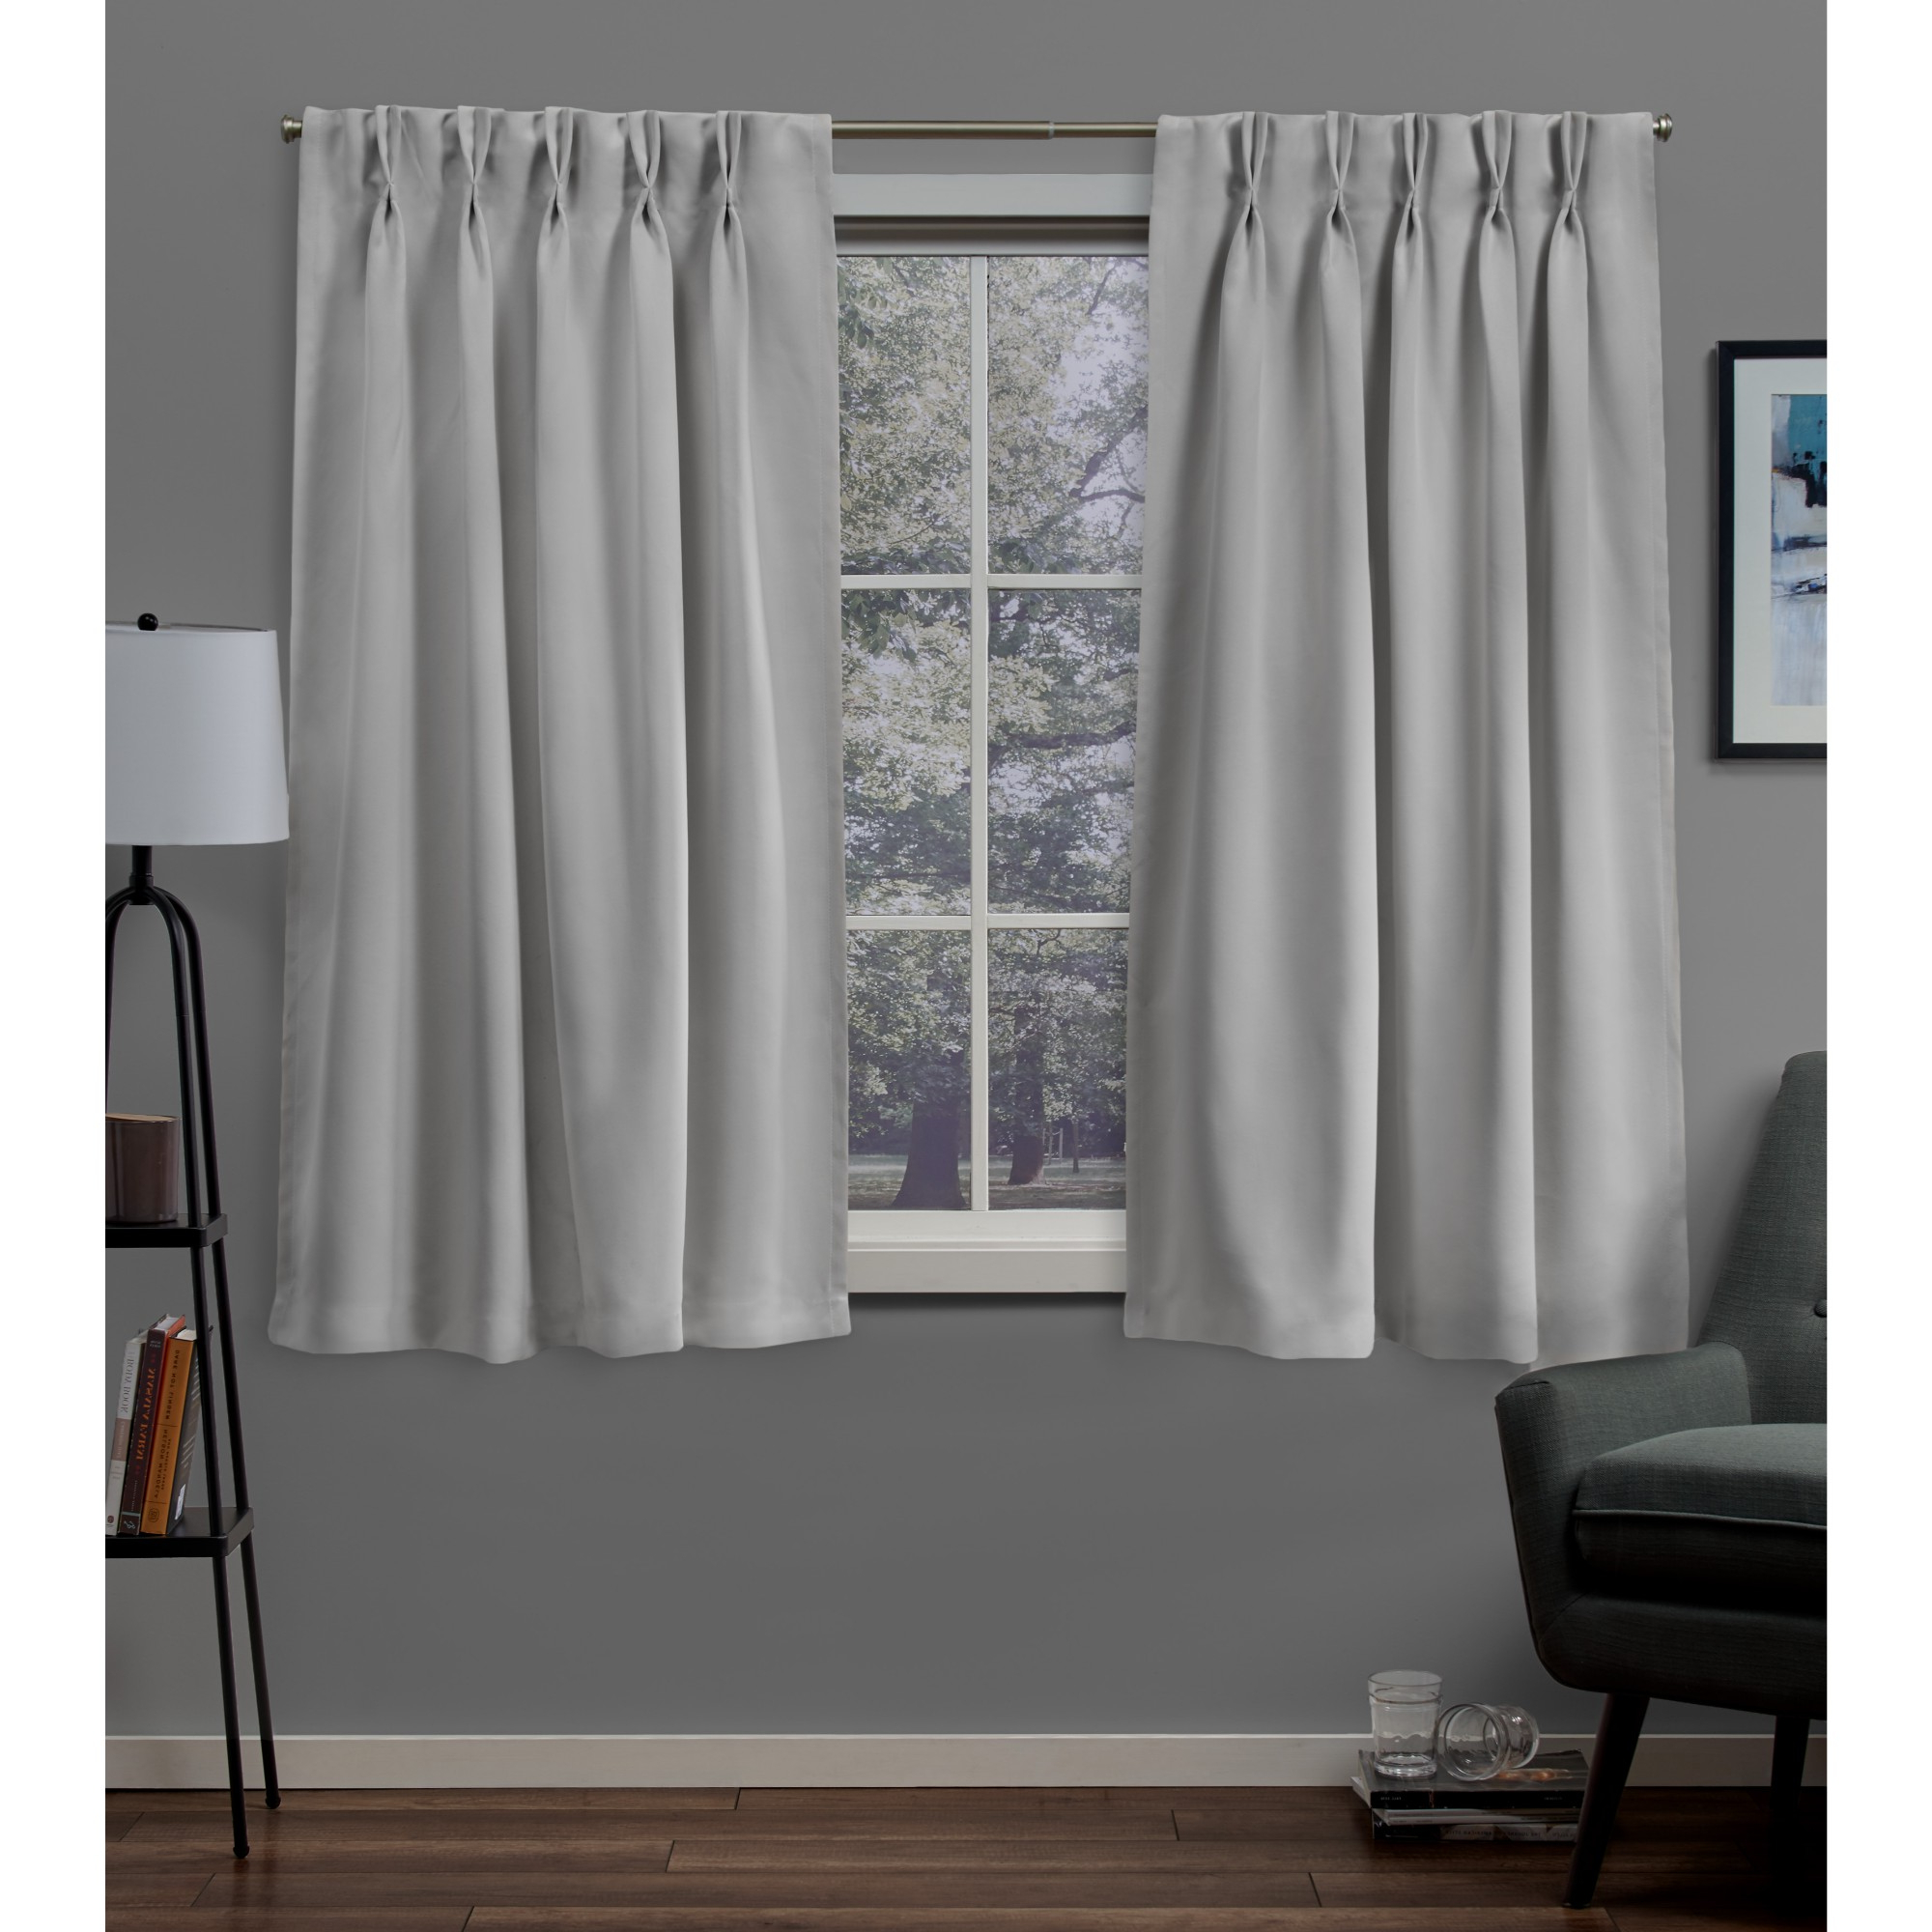 Well Known Sateen Woven Blackout Curtain Panel Pairs With Pinch Pleat Top In Sateen Woven Blackout Pinch Pleat Window Curtain Panel Pair (View 5 of 20)